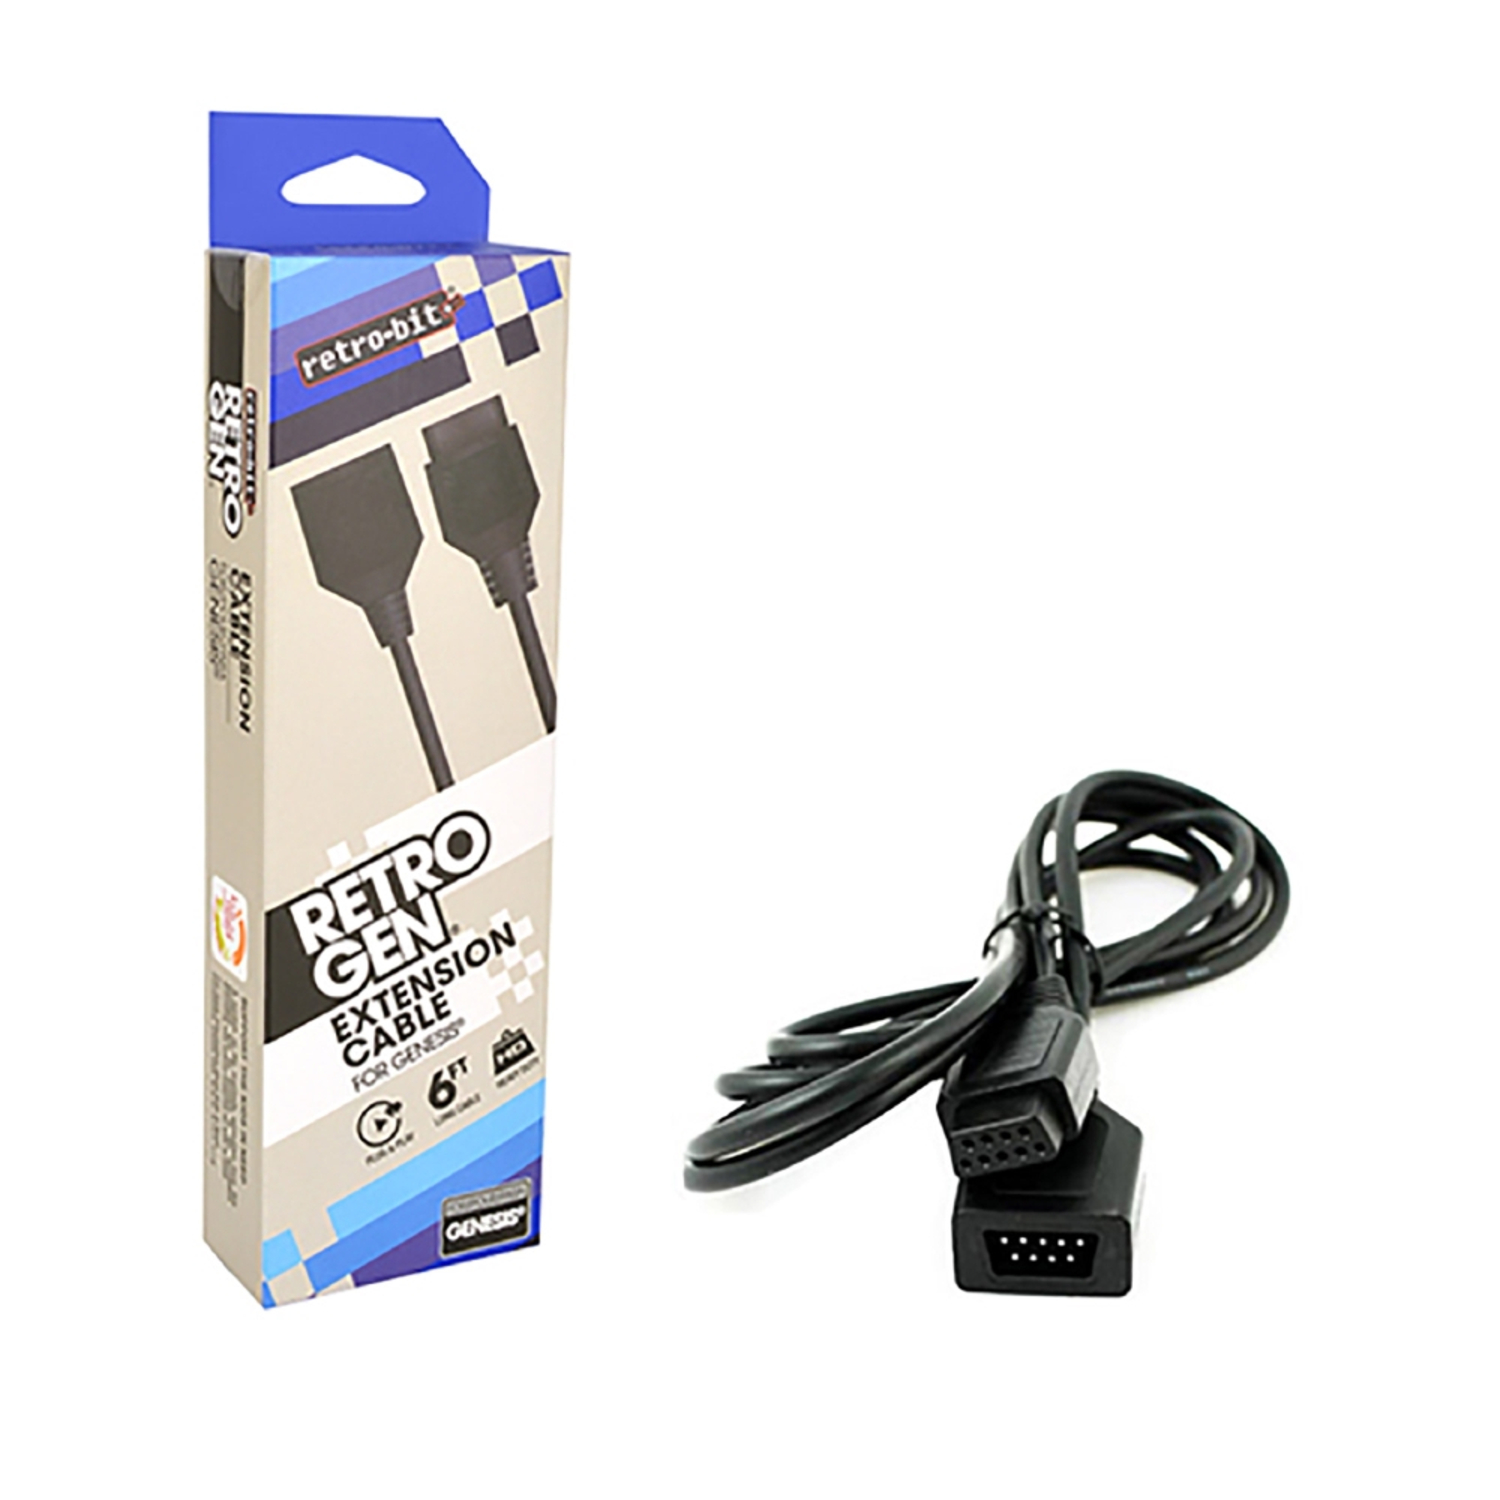 Retro-Bit 6 Feet Extension Cable For Sega Genesis System